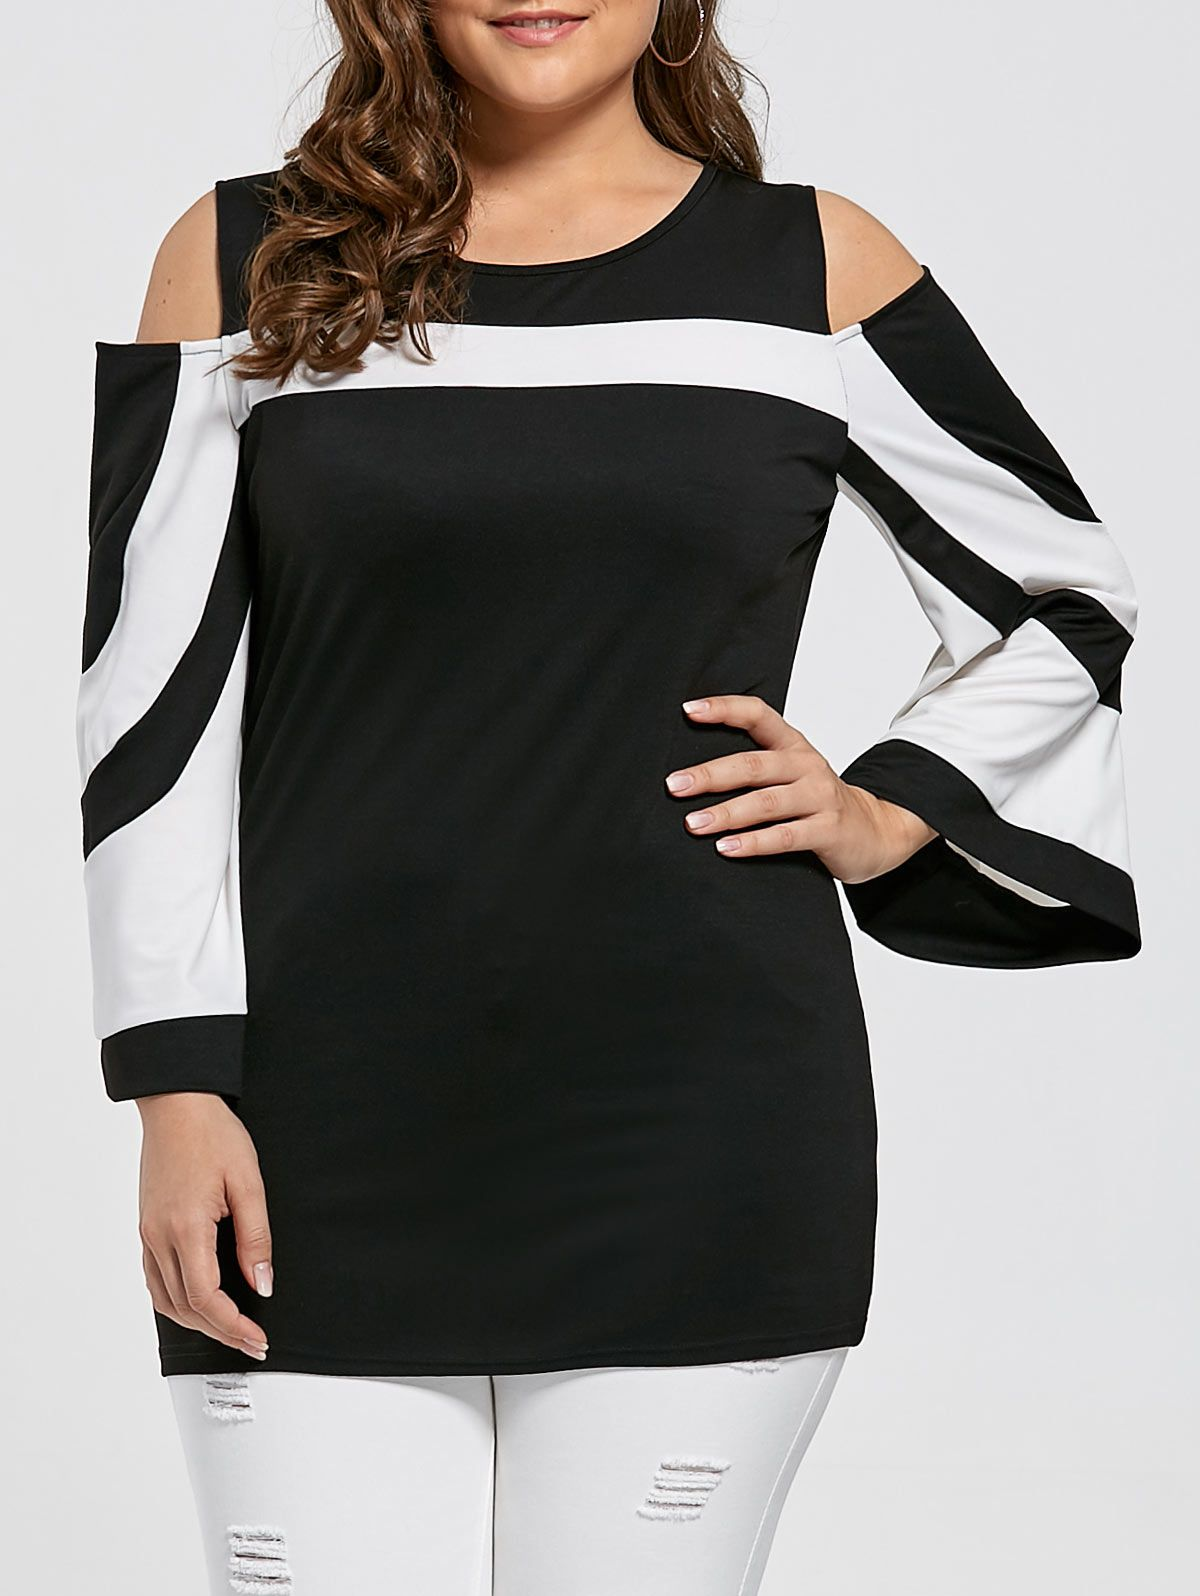 64e1e2c34f0 Buy the latest plus size t shirts for women at cheap prices